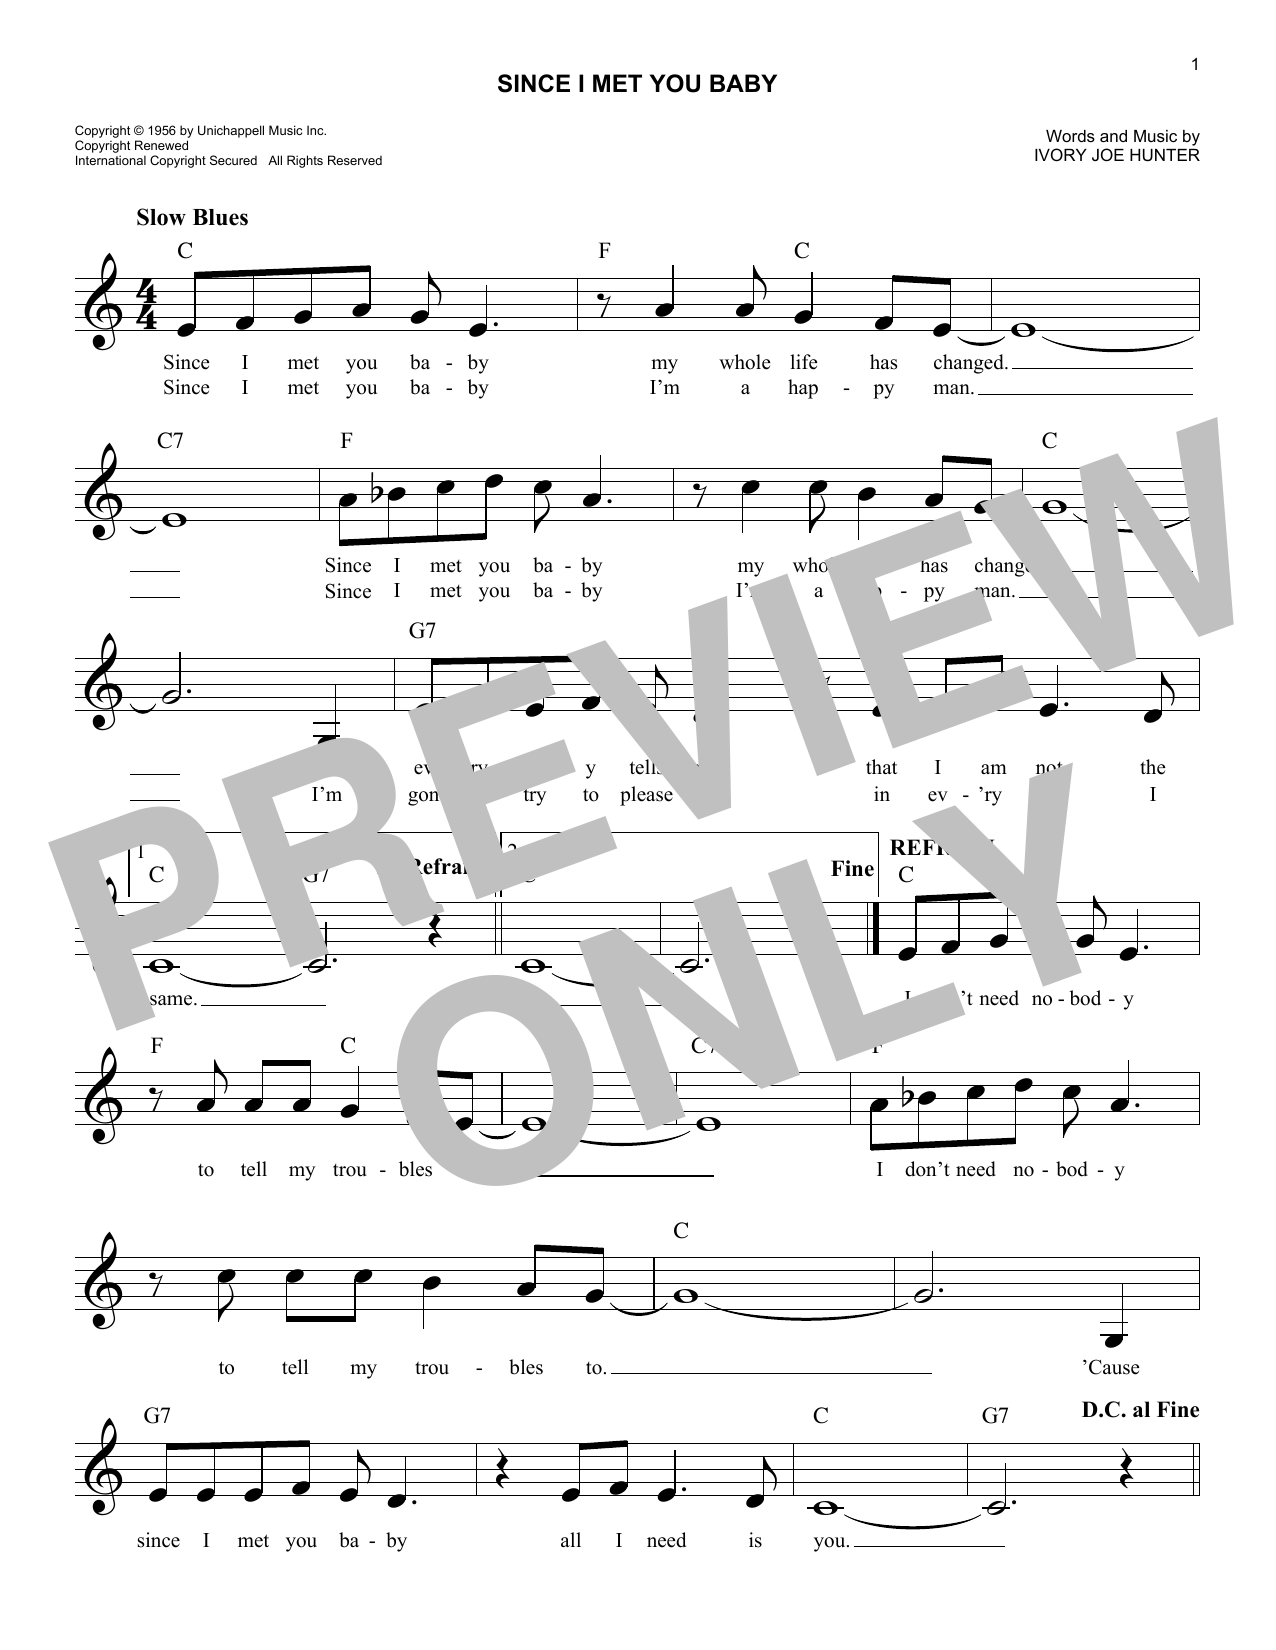 Since I Met You Baby Sheet Music